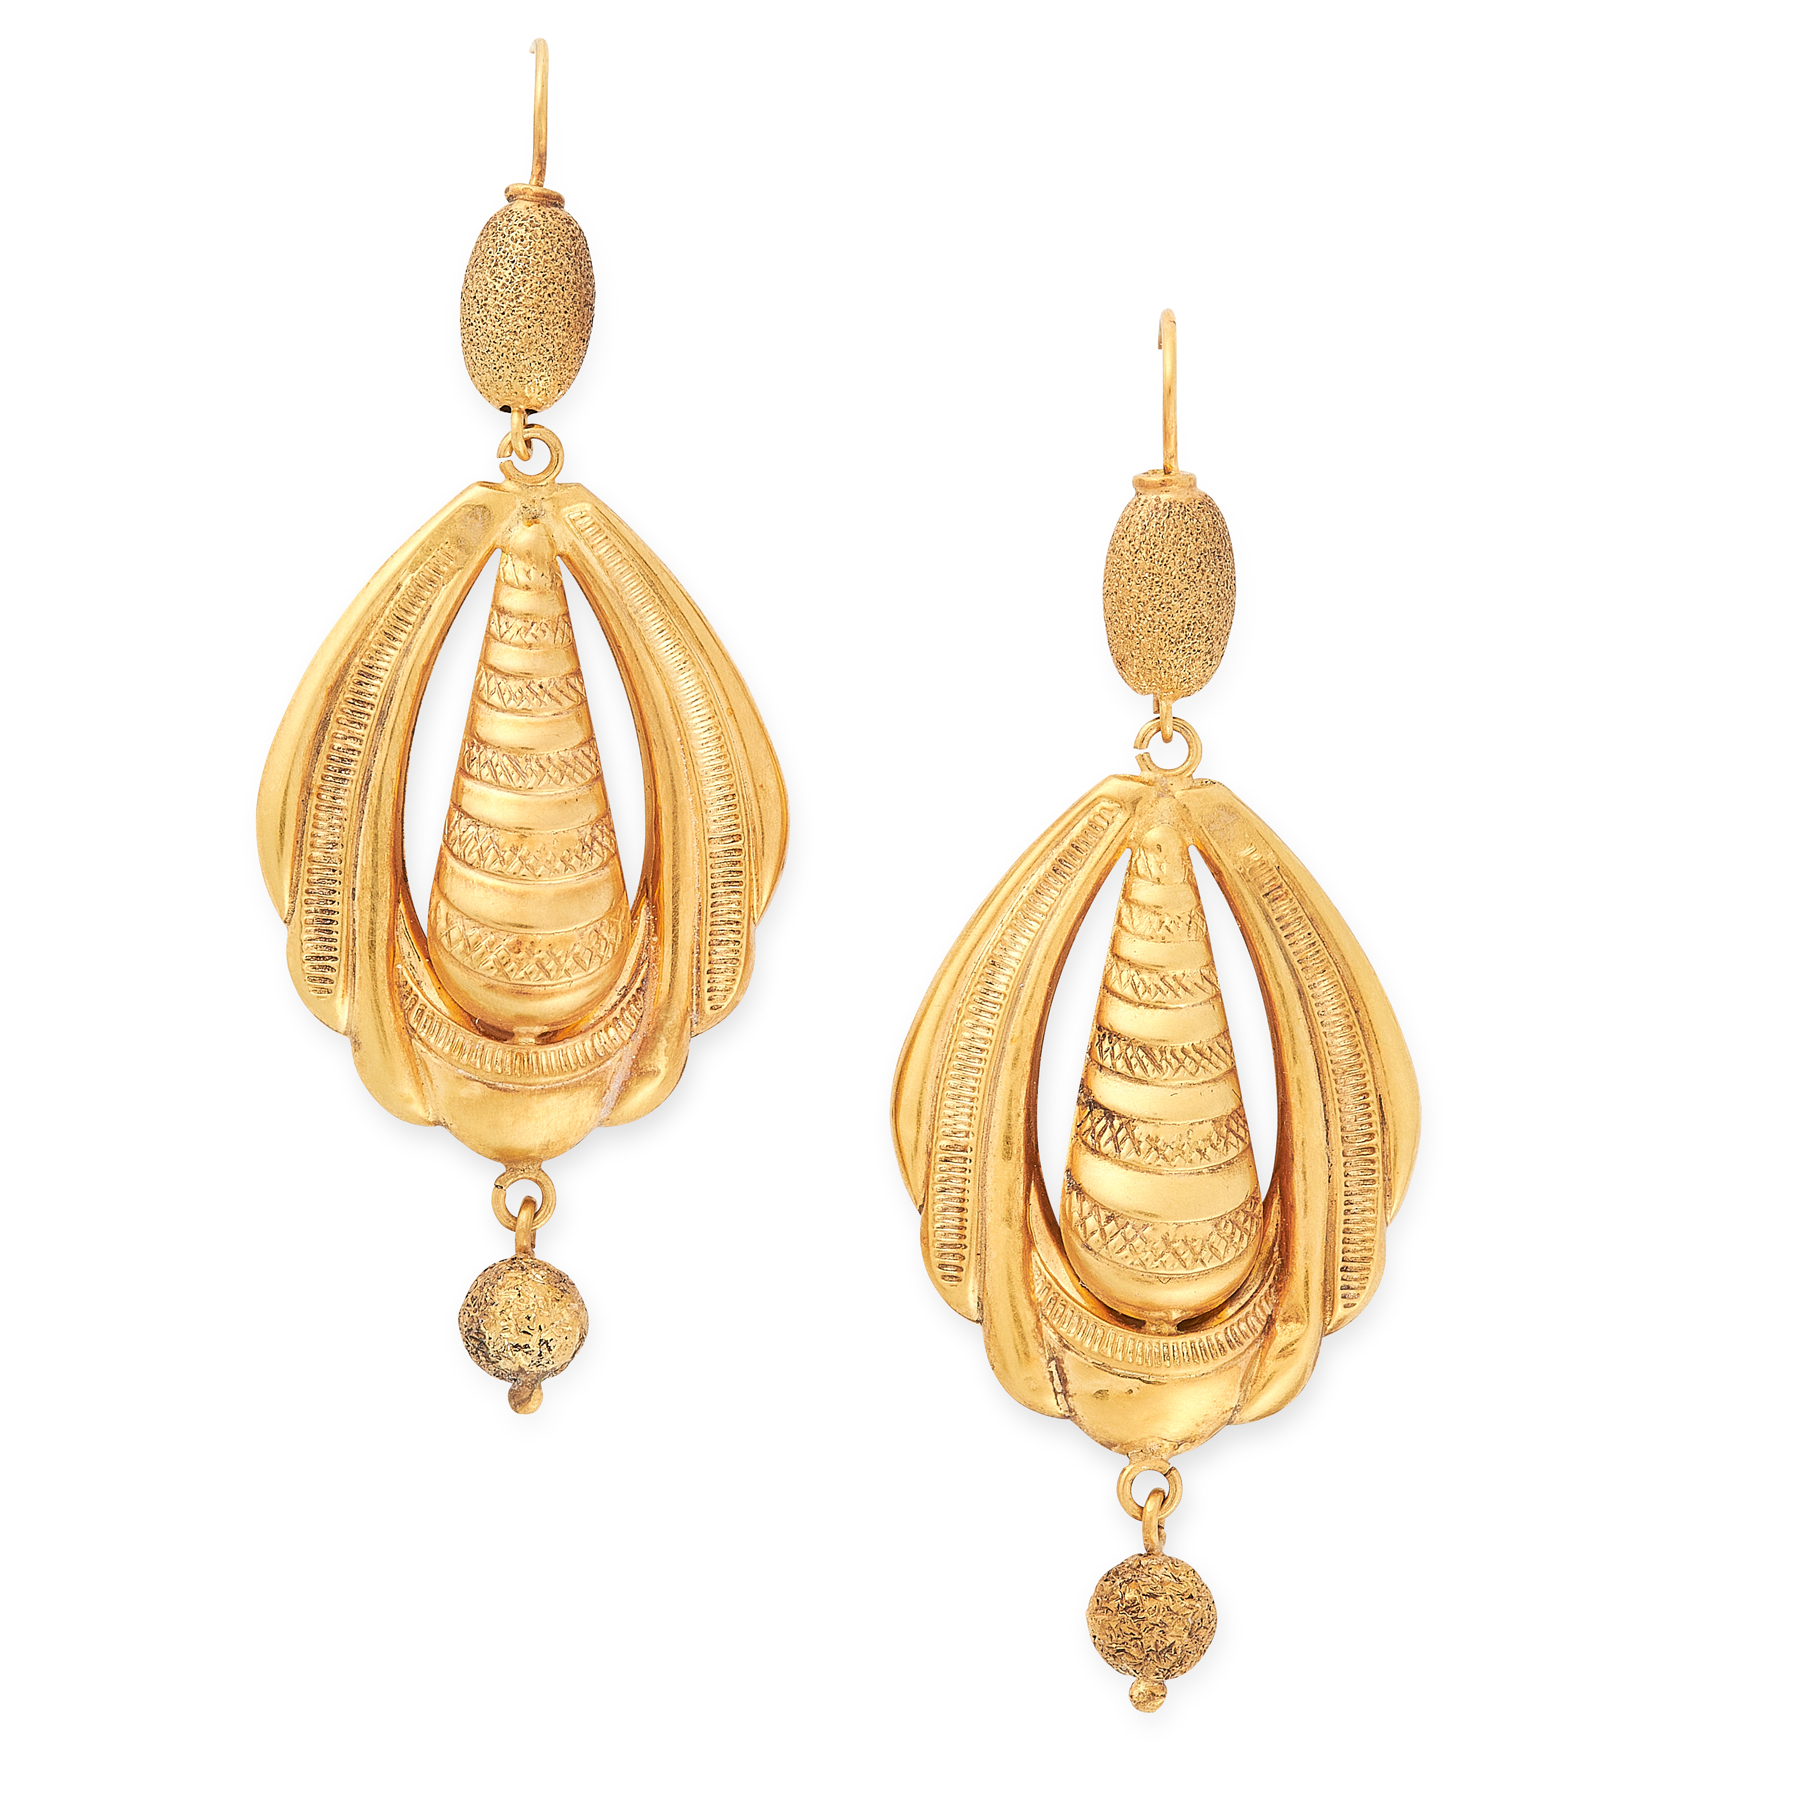 A PAIR OF ANTIQUE DROP EARRINGS in yellow gold, the articulated bodies of each formed of textured